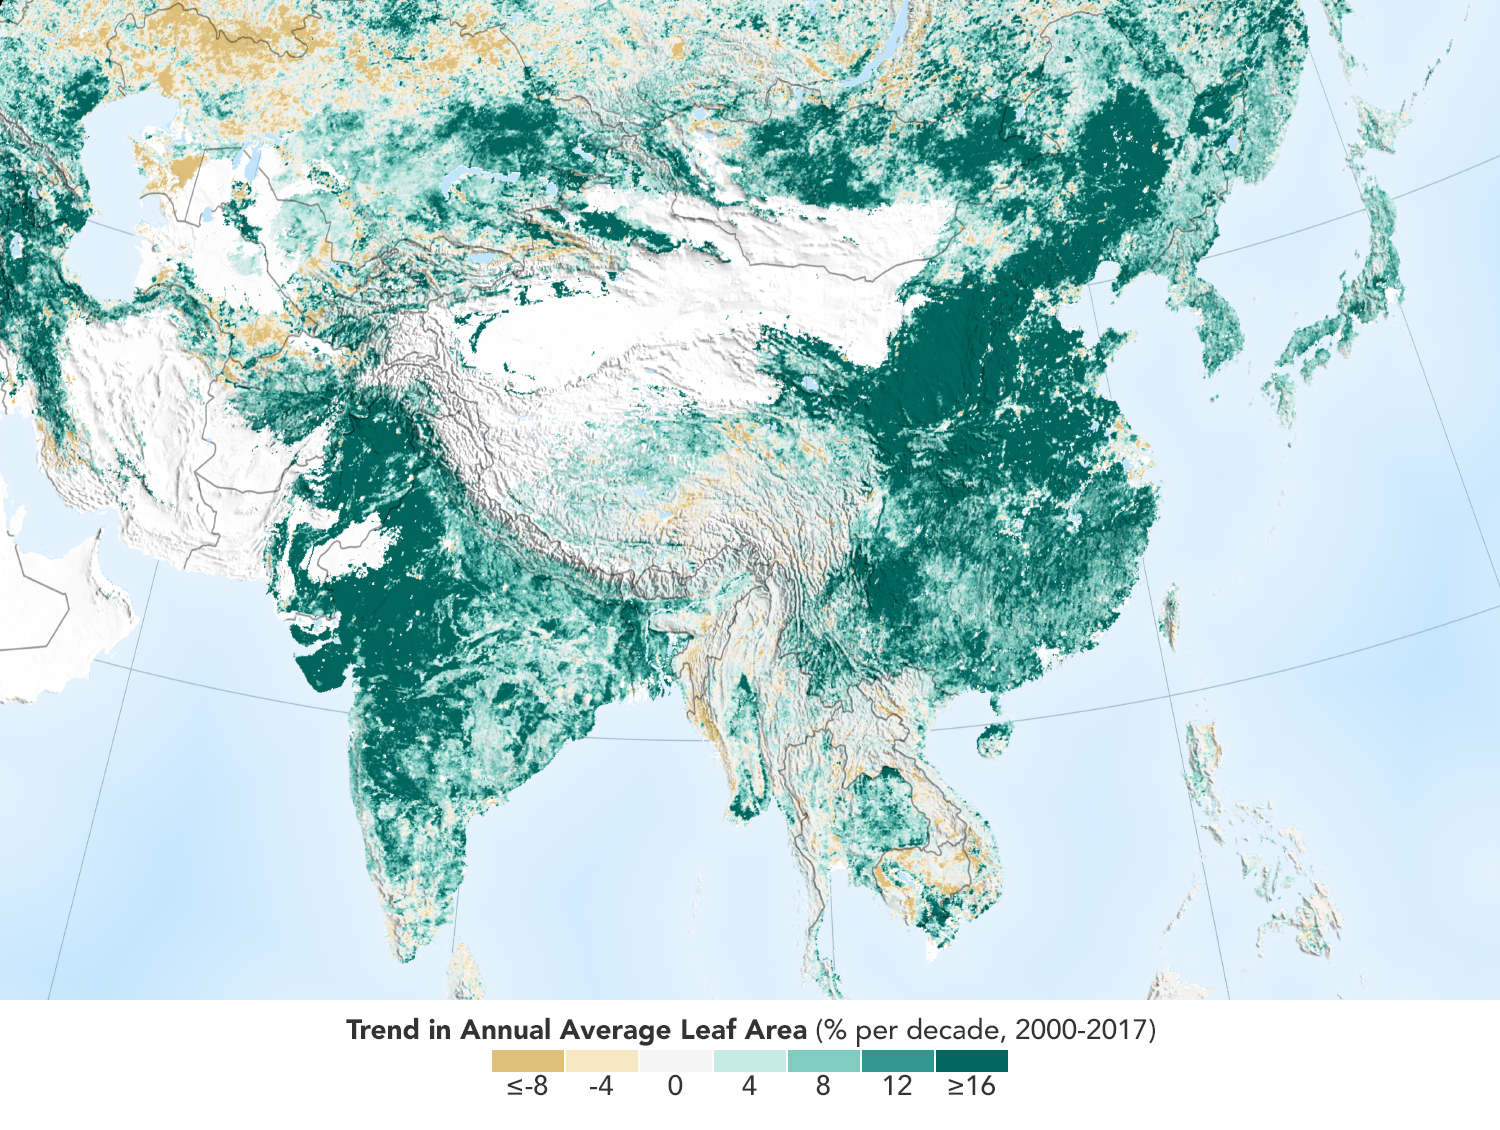 Activity in China and India Dominates the Greening of ... on asia digital map, asia shape, asia culture, asia on map, asia india, asia traditions, asia pacific map, asia elevation, asia finance, asia spice map, russia map, asia history, asia land, asia indonesia, sub-saharan africa cities map, asia earth view, asia map with landforms, asia russia, asia tv map, asia china,